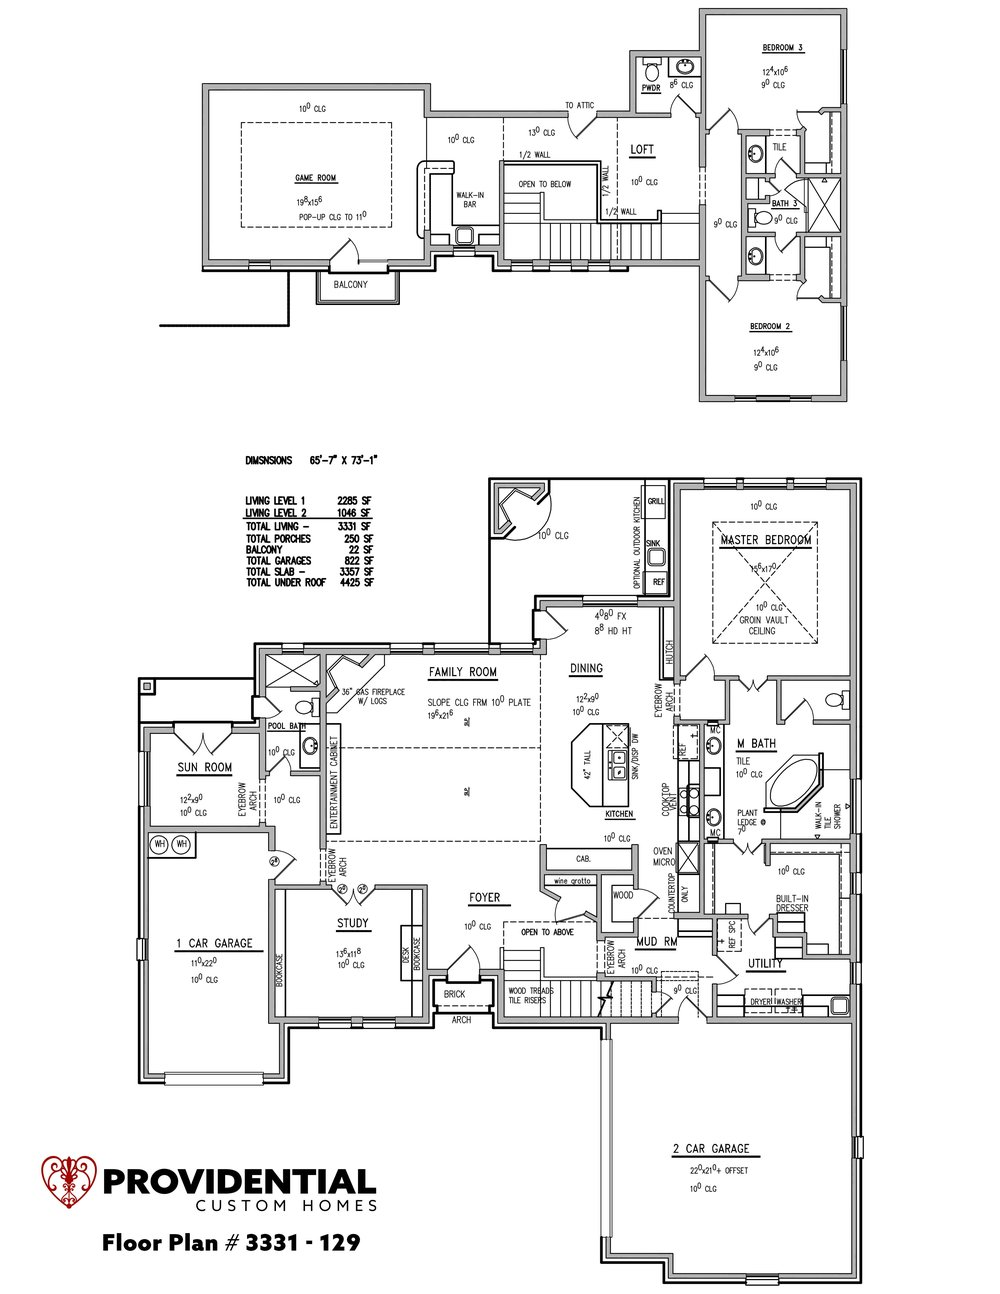 The FLOOR PLAN #3331 - 129.jpg